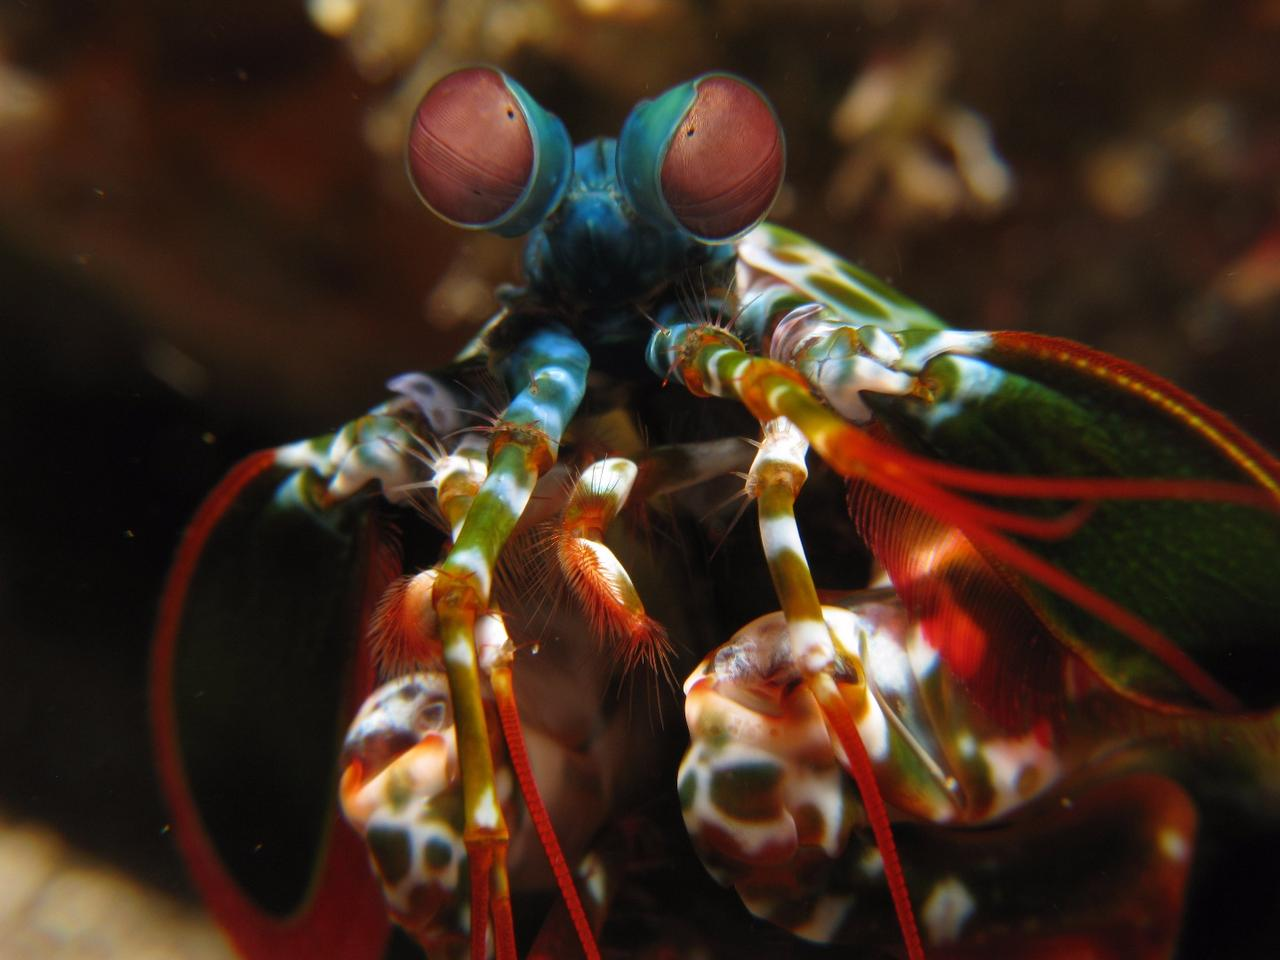 A mantis shrimp, with its swivelling eyes